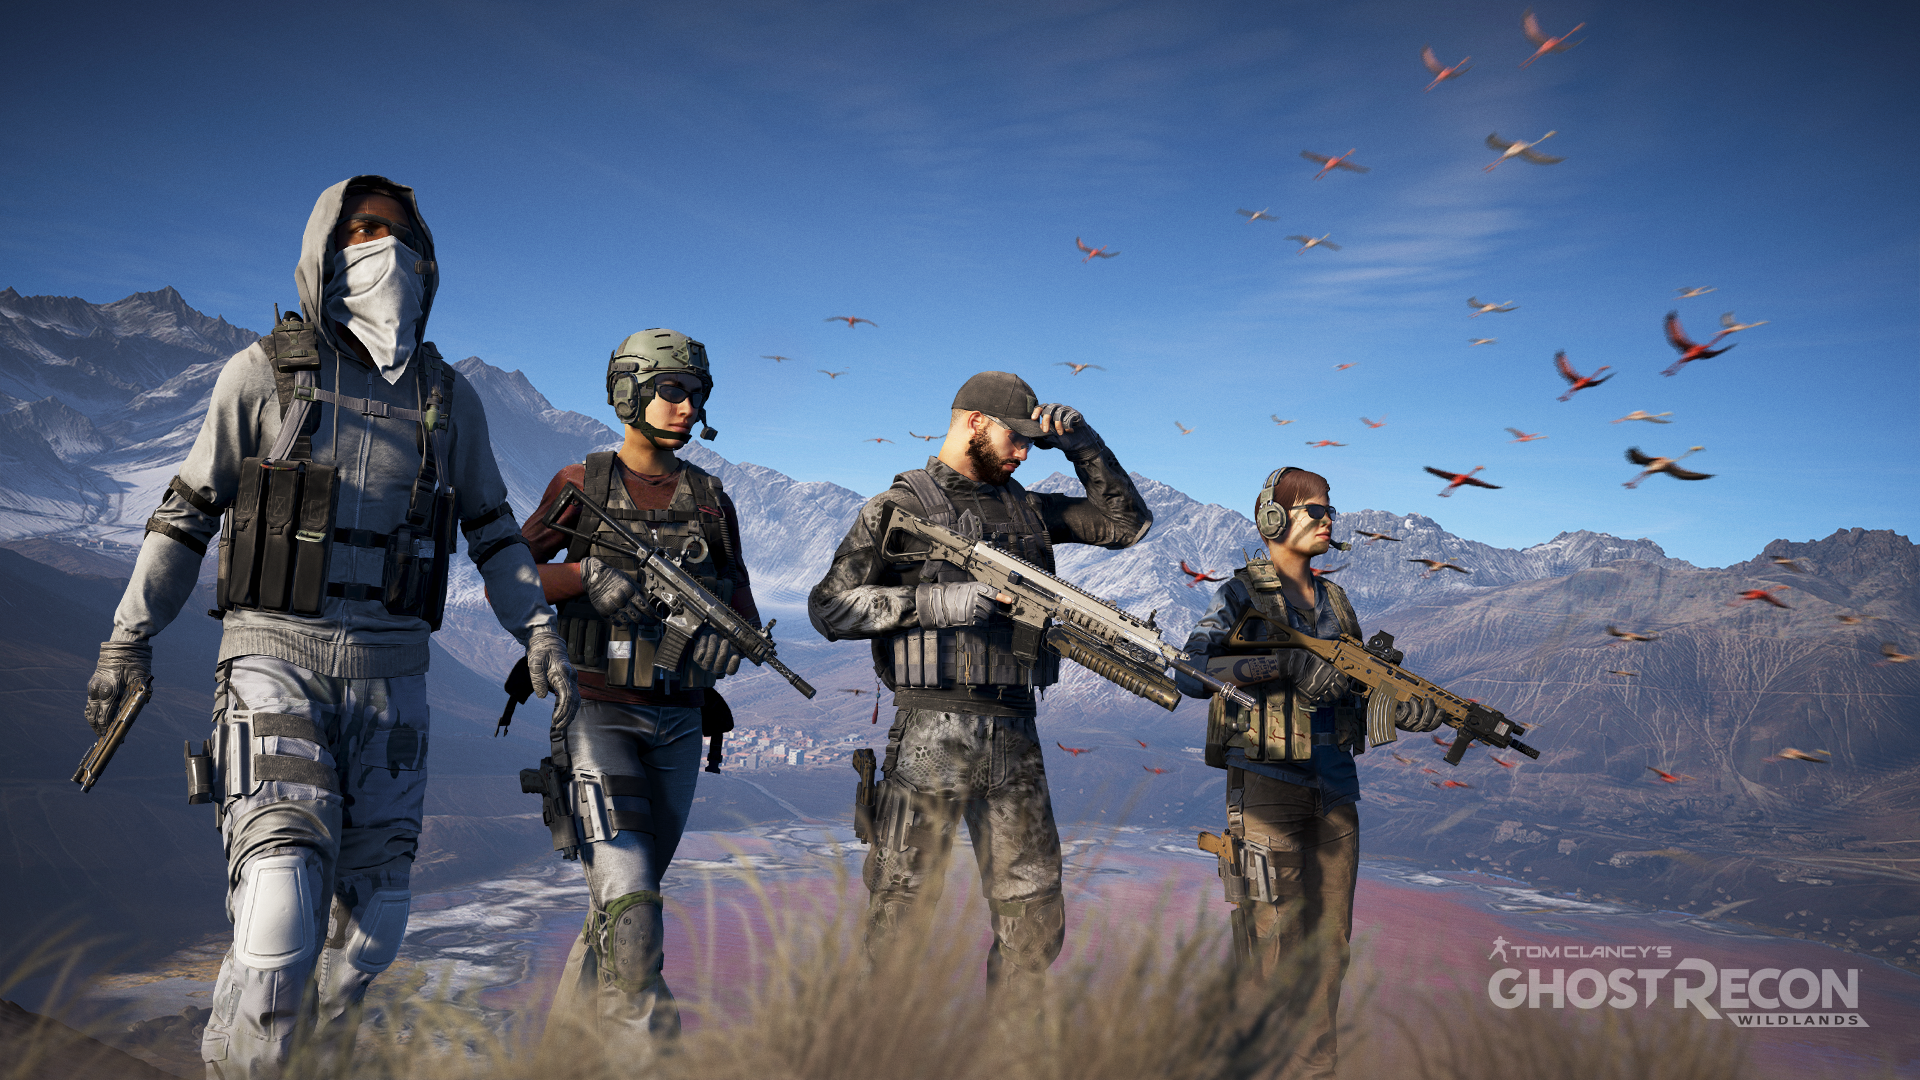 ОБТ Tom Clancy's Ghost Recon Wildlands началось